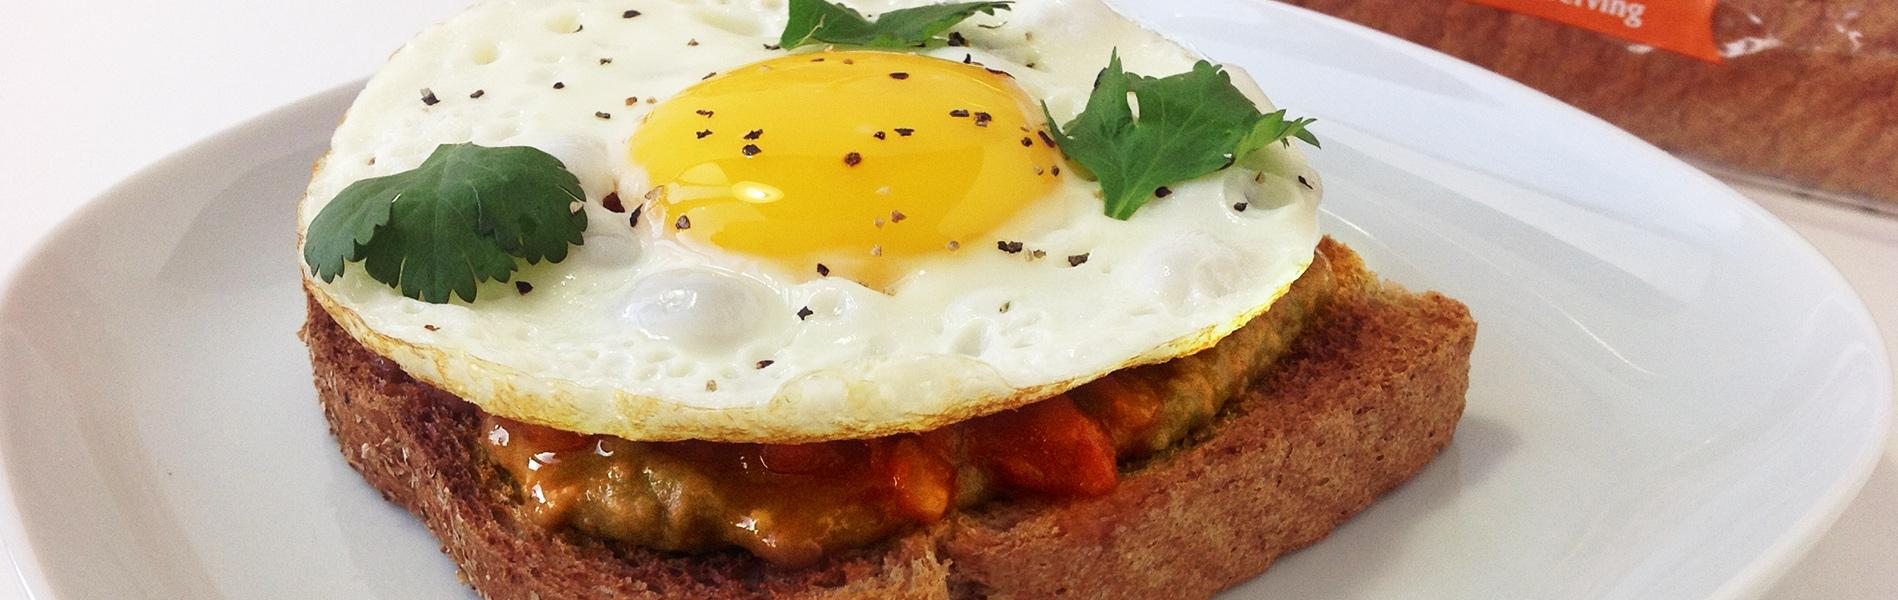 Eggs and beans on toast